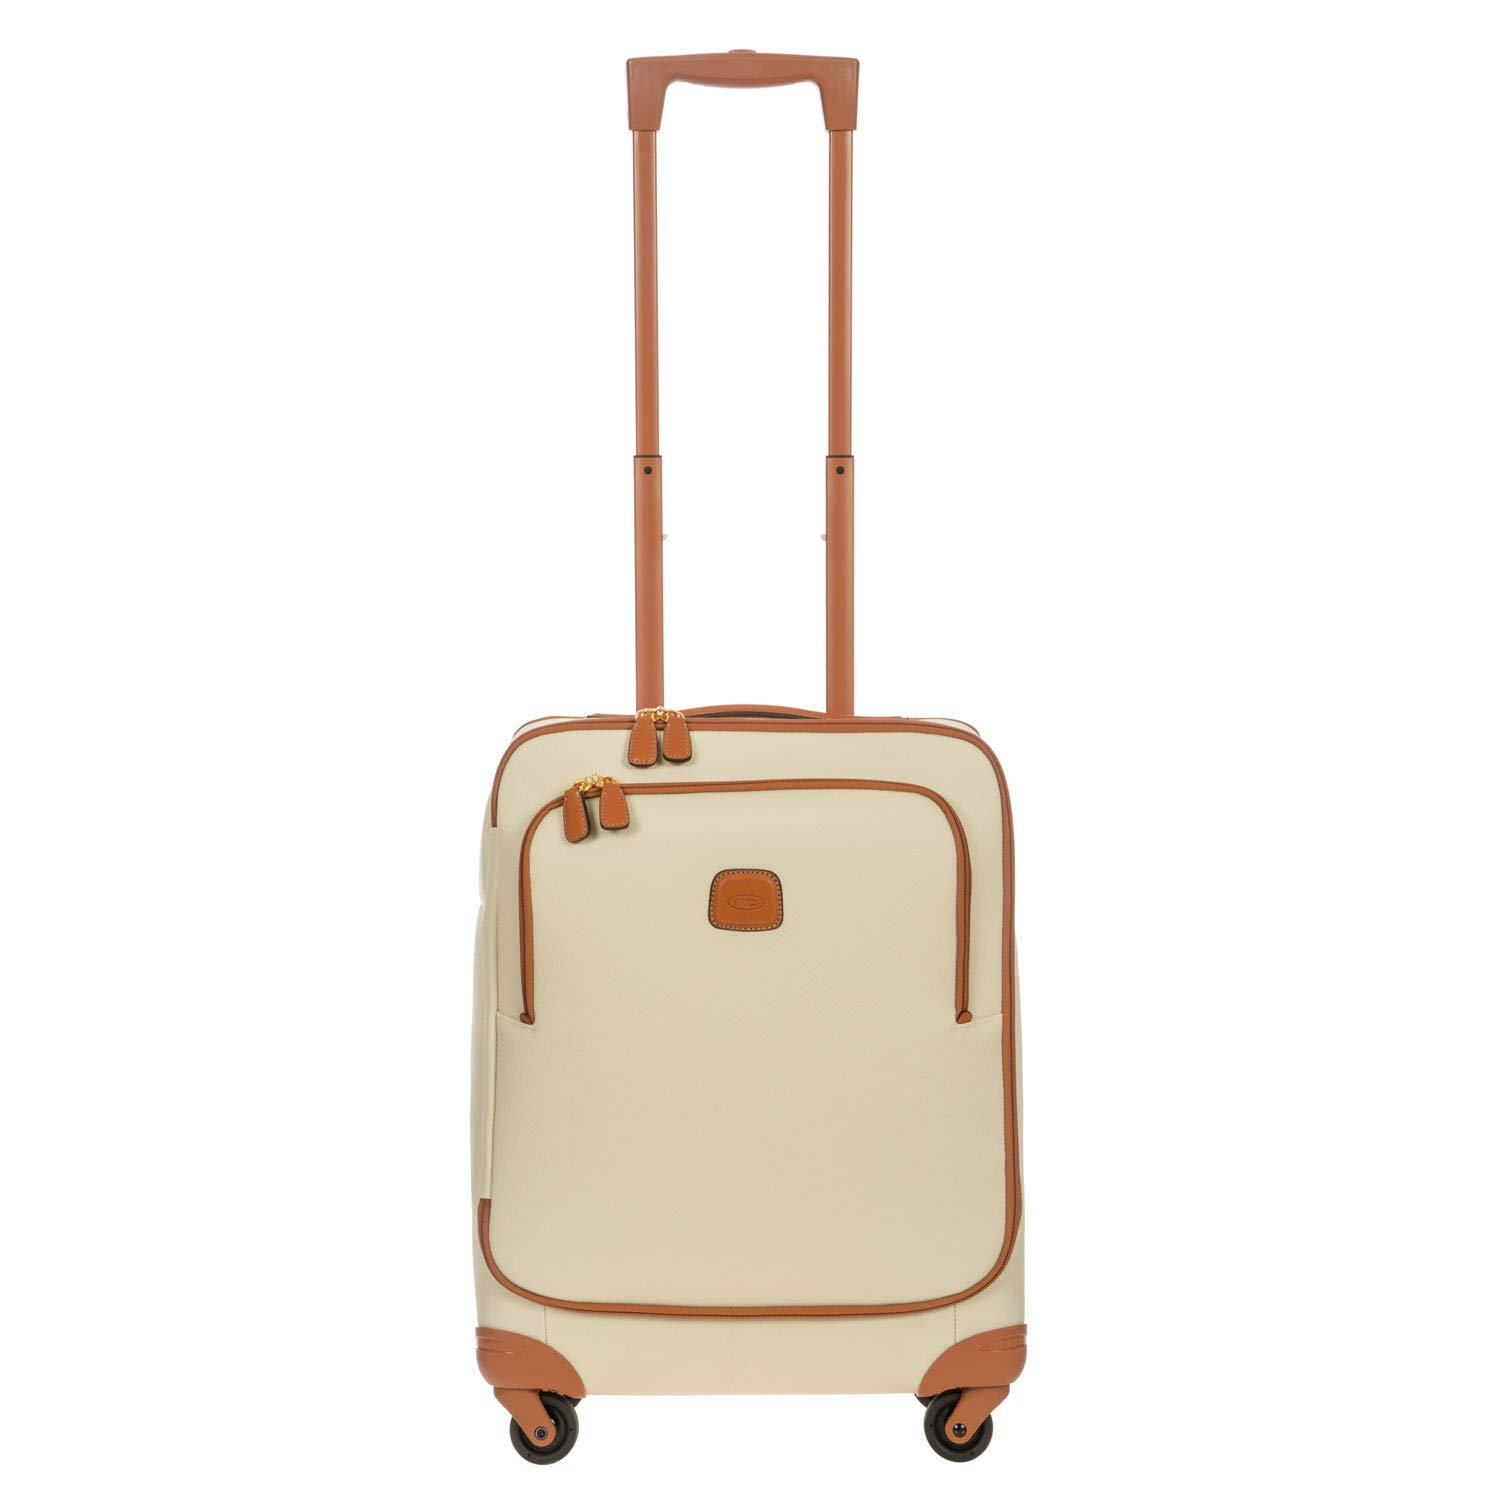 Bric s 2015 Bojola 21-Inch Carry-on Light Spinner